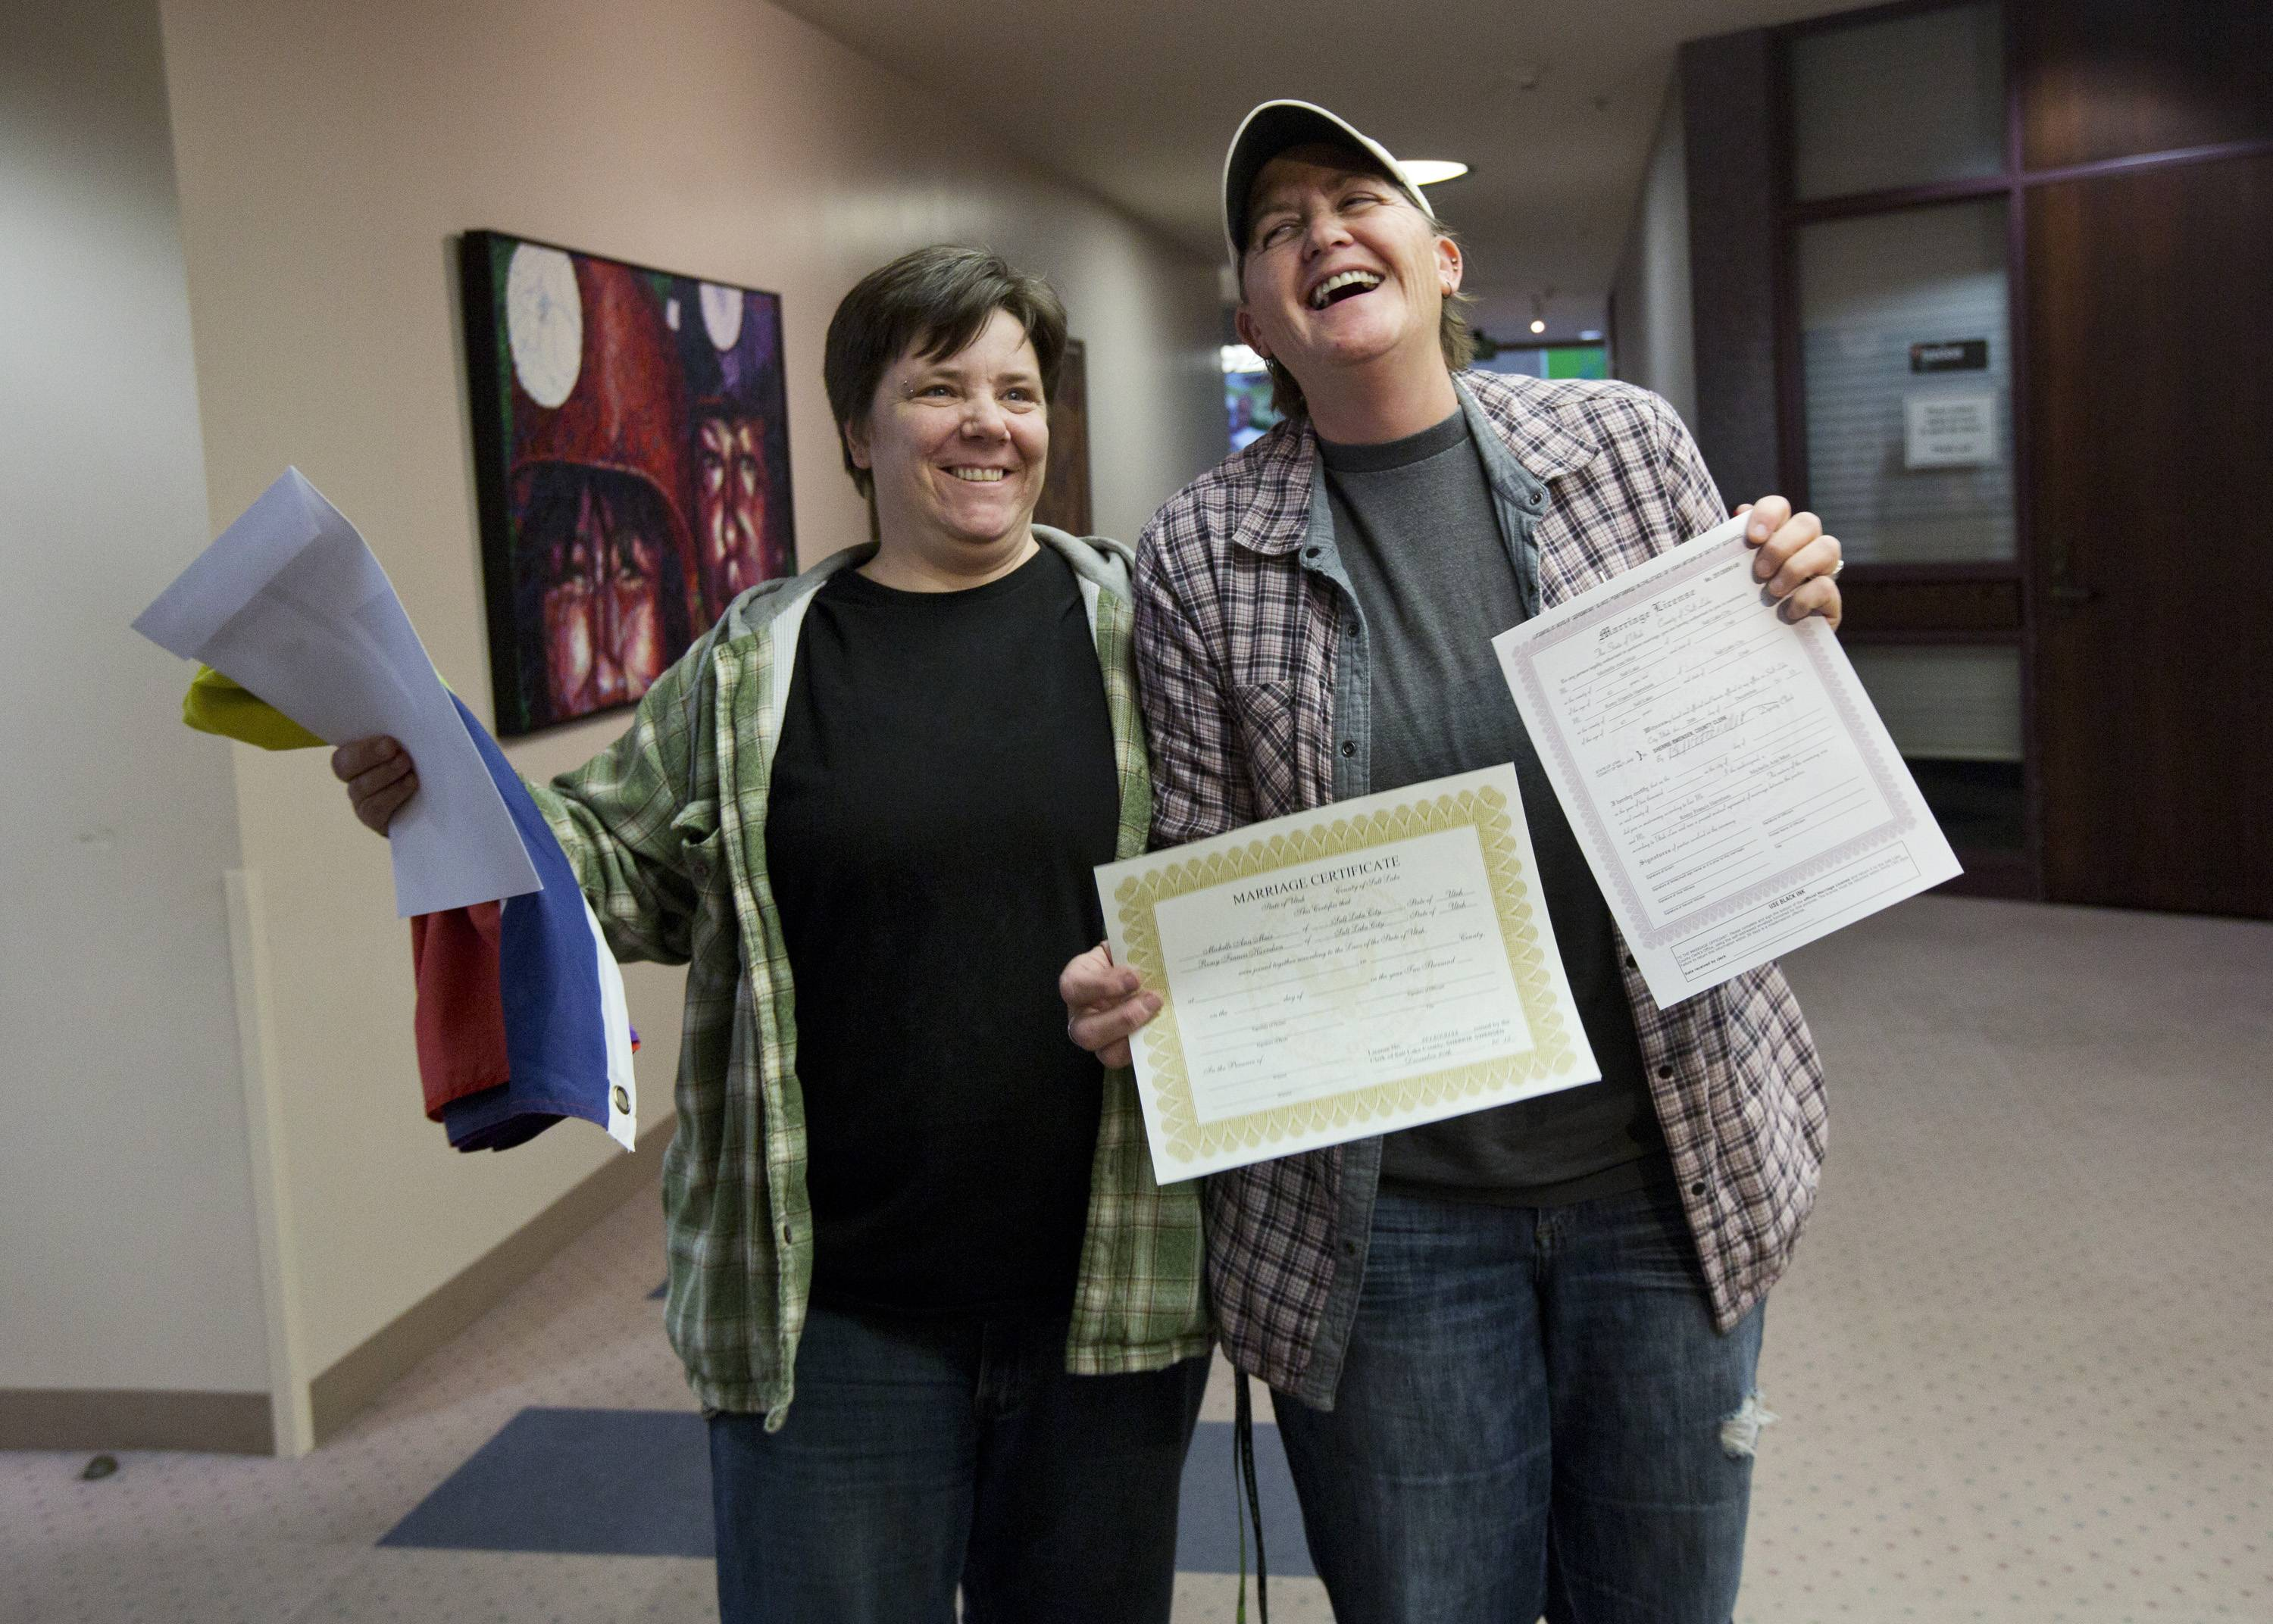 Elise Larsen, left, and Samantha Christensen, right, show off their marriage license after being one of the first same sex couples to receive one at the Salt Lake County Clerk's Office in Salt Lake City, Utah.